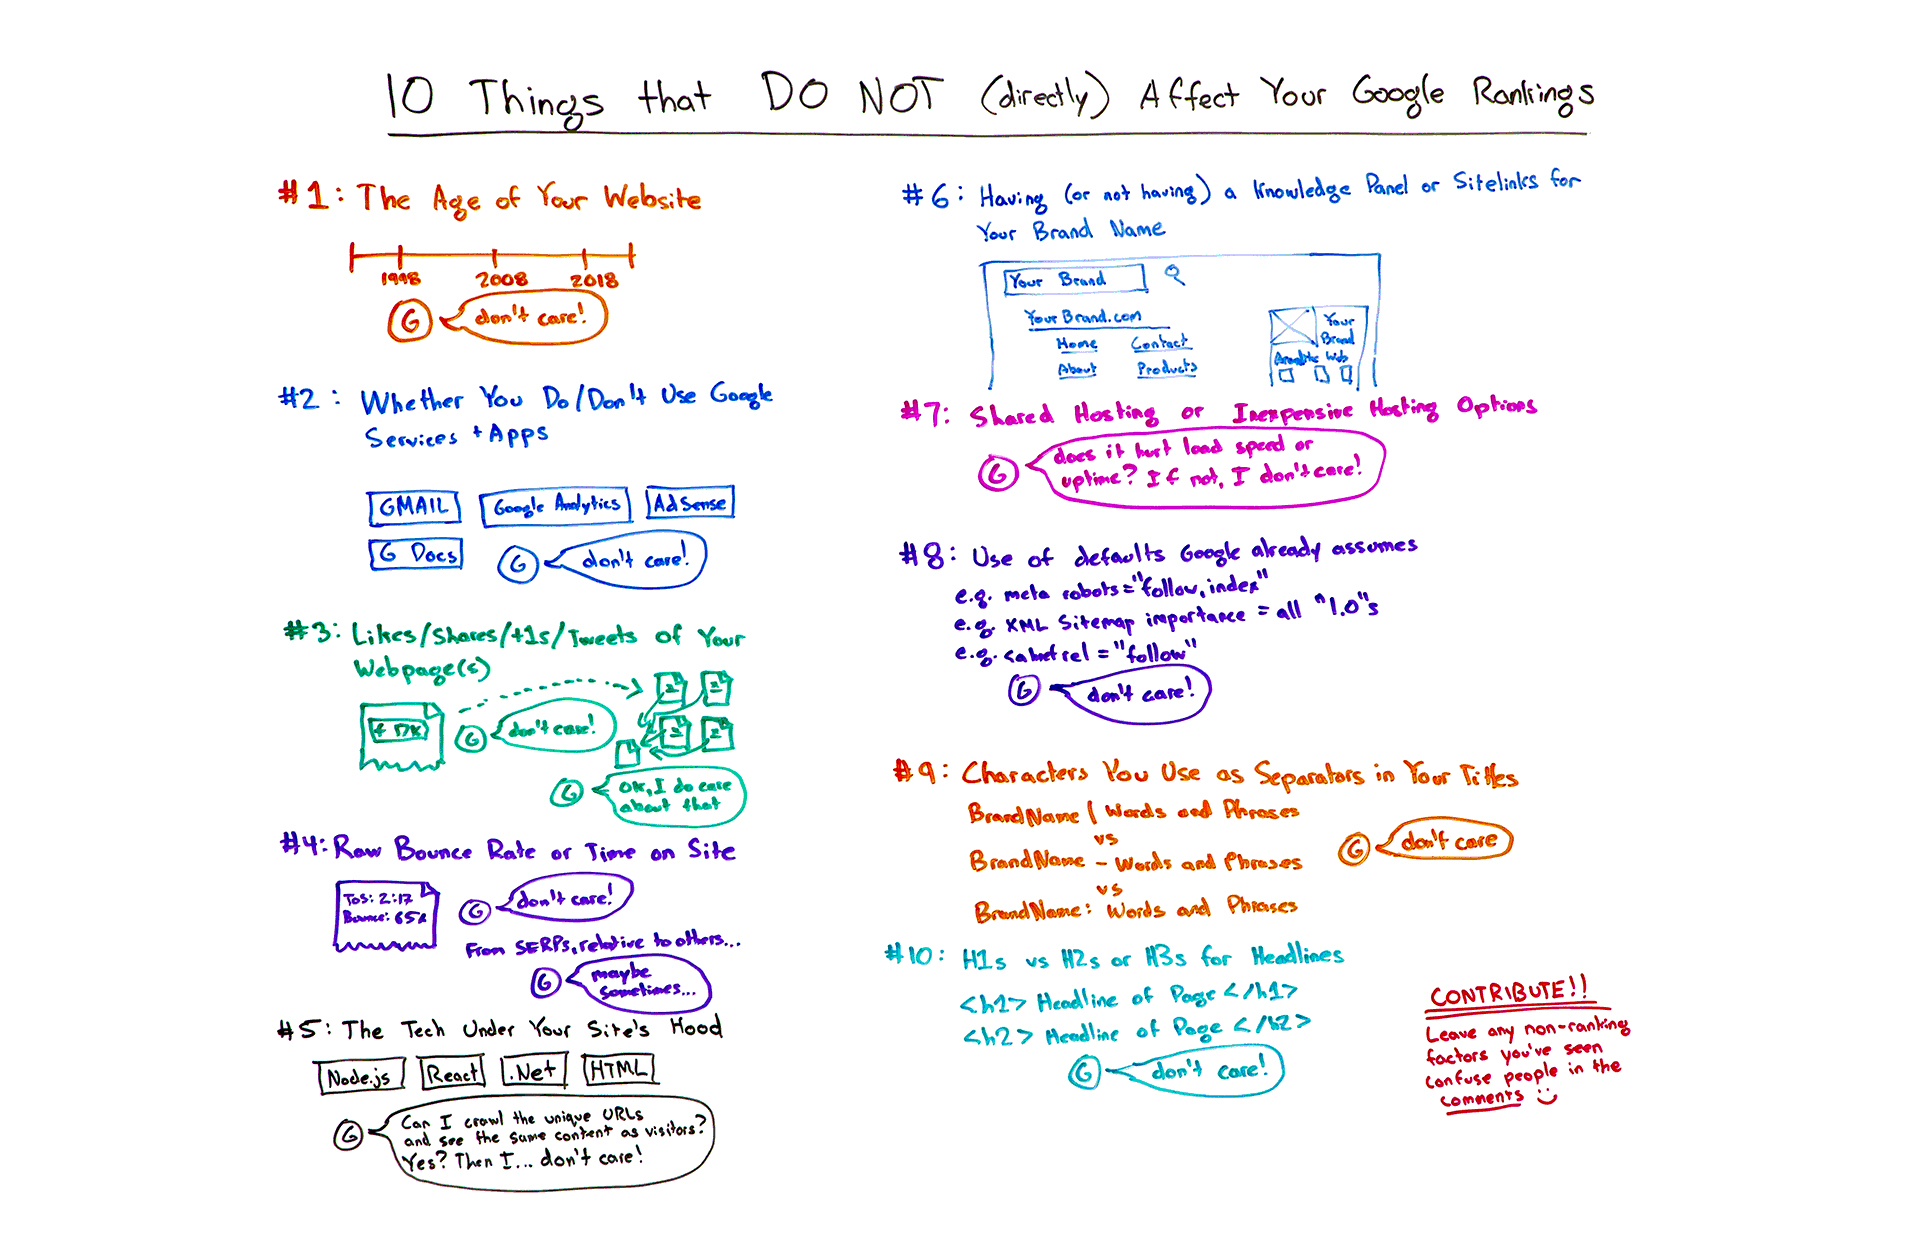 https://moz.com/blog/10-things-do-not-affect-rankings